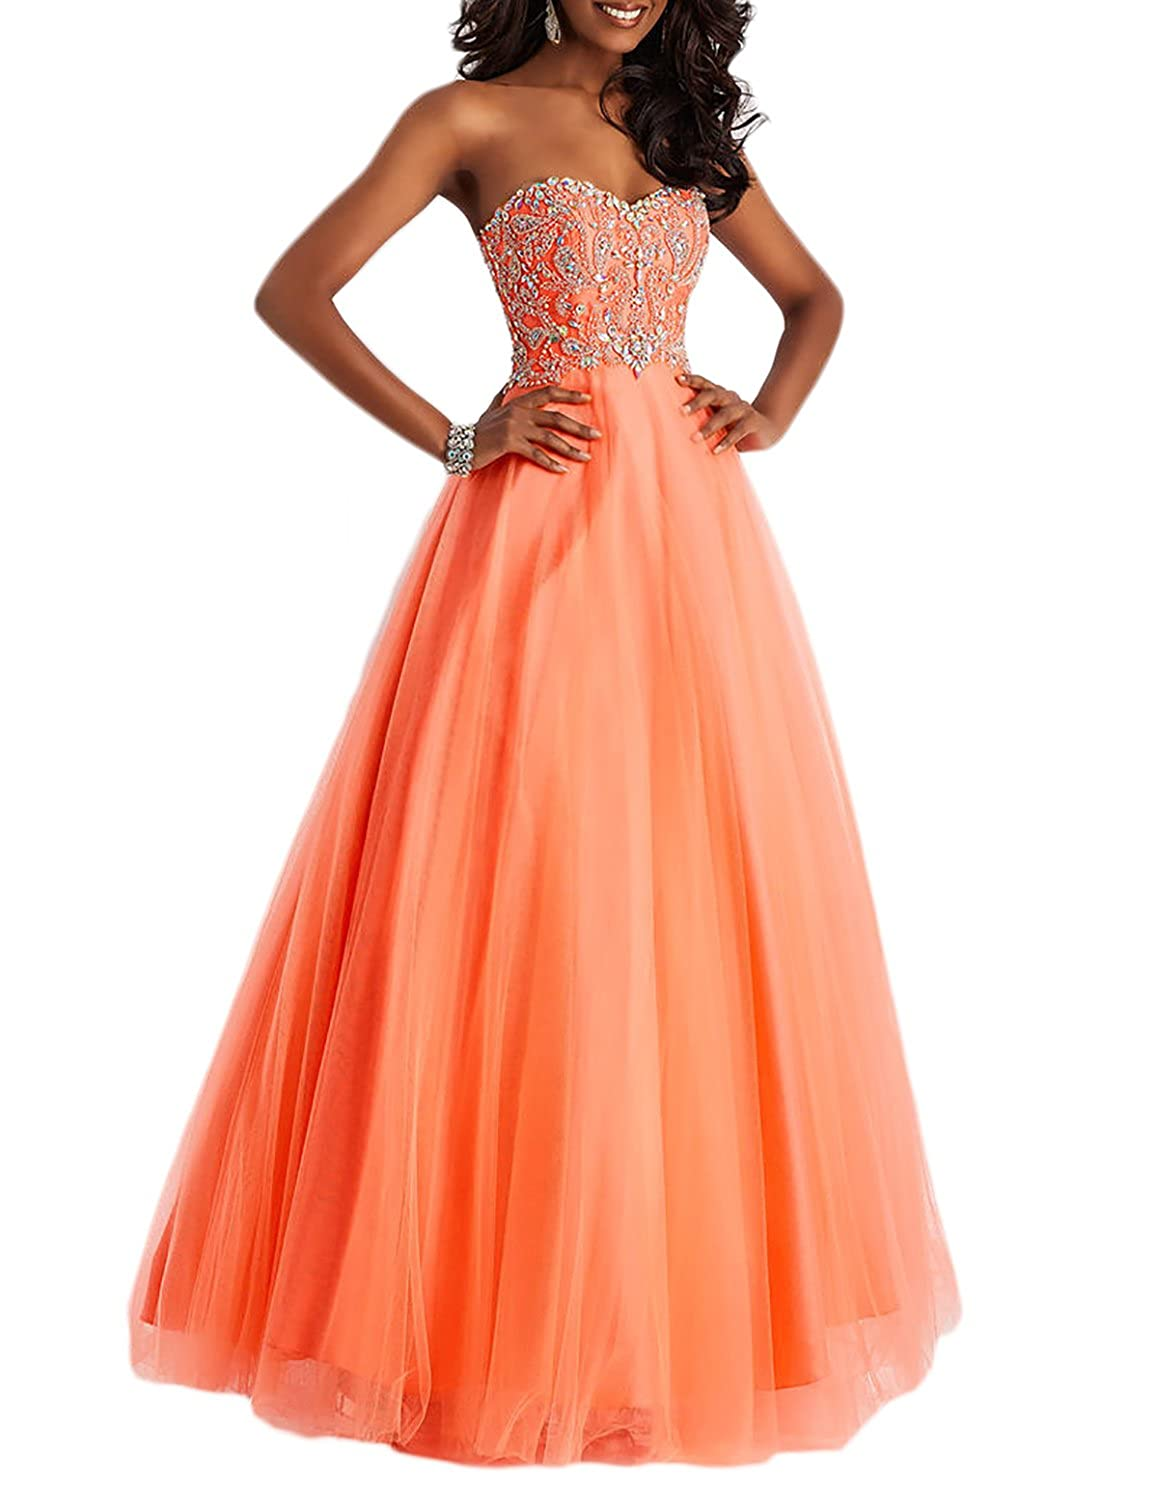 a3f6f747d37 DarlingU Women s Formal Sweetheart Beaded Prom Dress Party Gown Open Back  DPM281 at Amazon Women s Clothing store